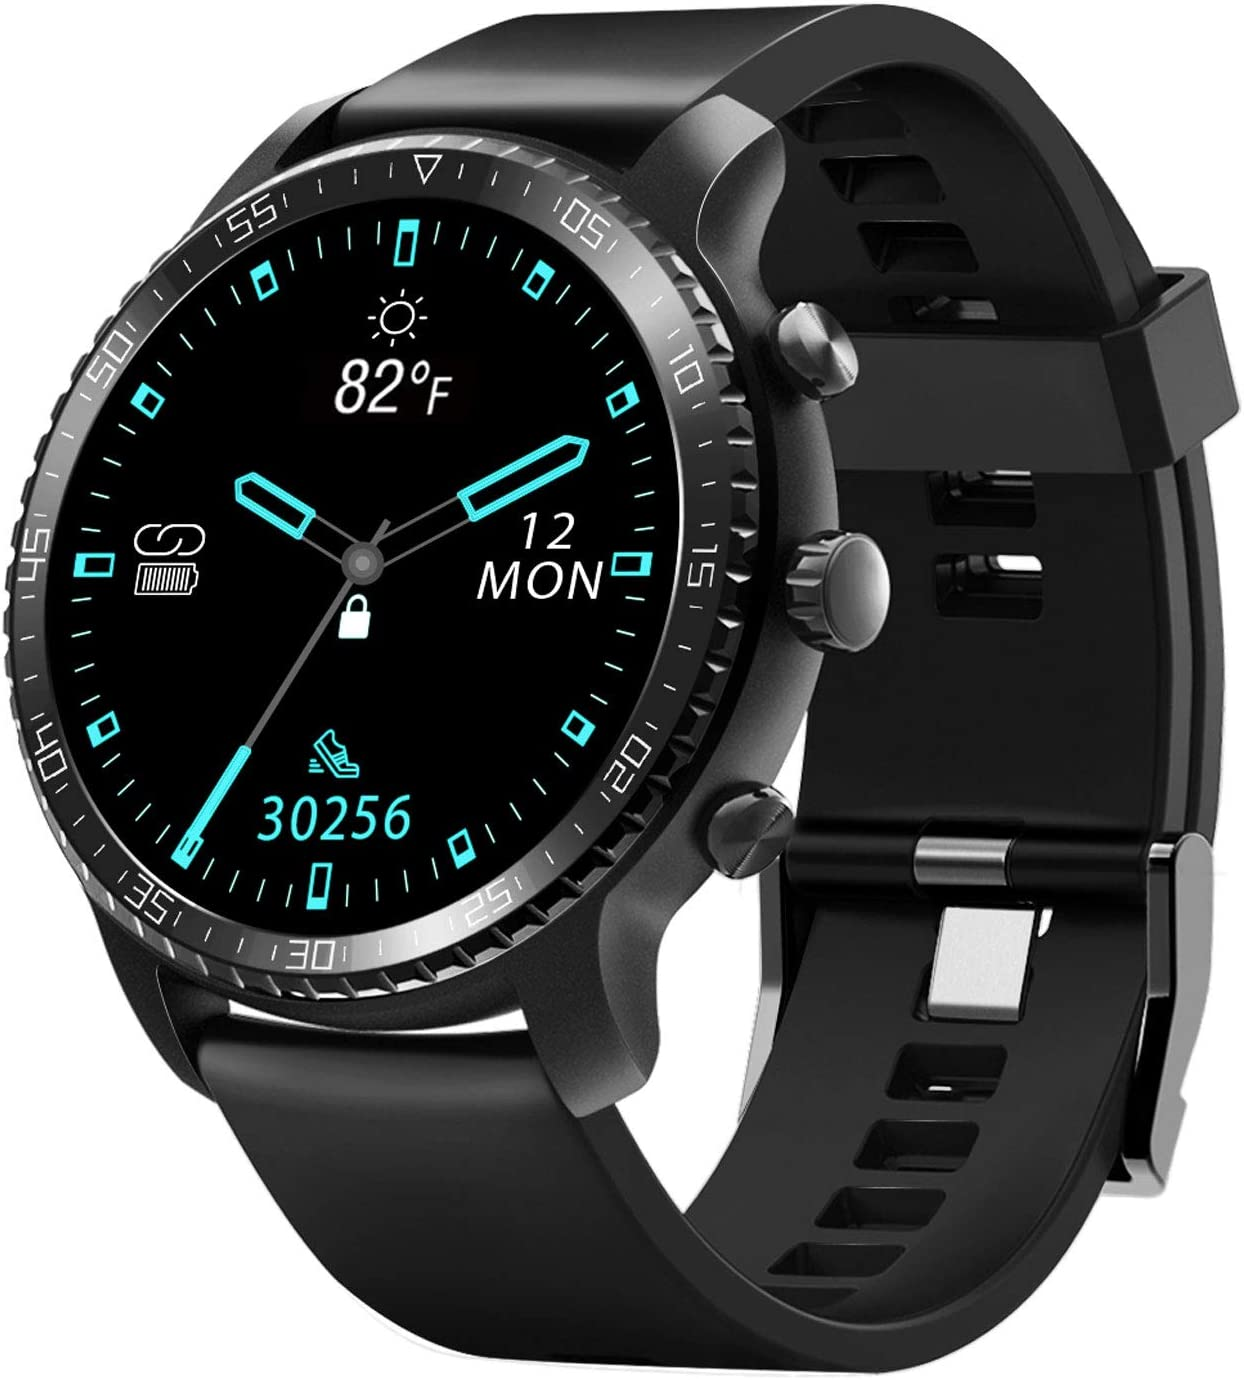 Tinwoo Smart Watch for Android / IOS Digital Smart Watch for Men and Women